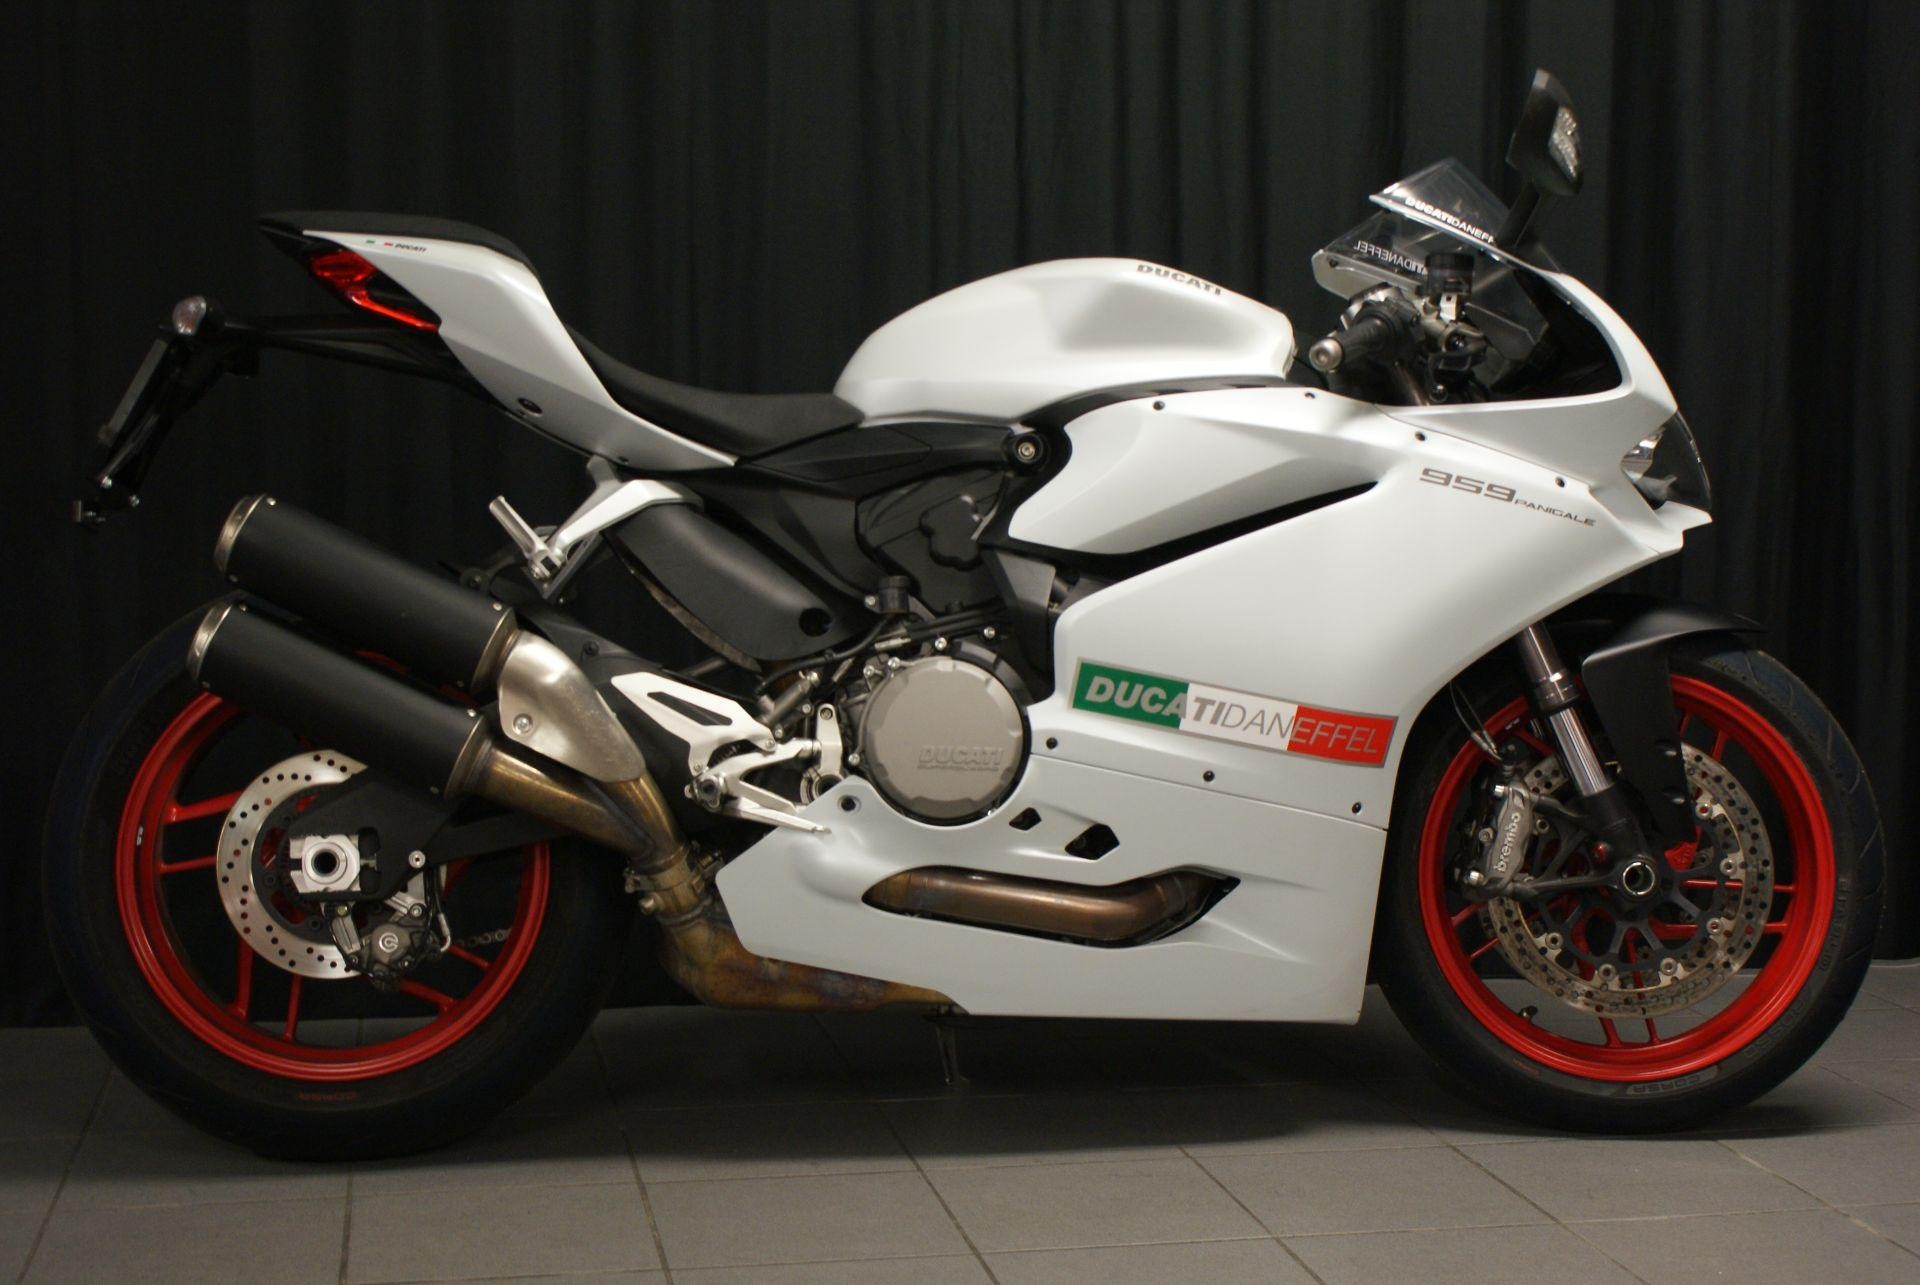 ducati 959 panigale abs daneffel motos wil occasion. Black Bedroom Furniture Sets. Home Design Ideas